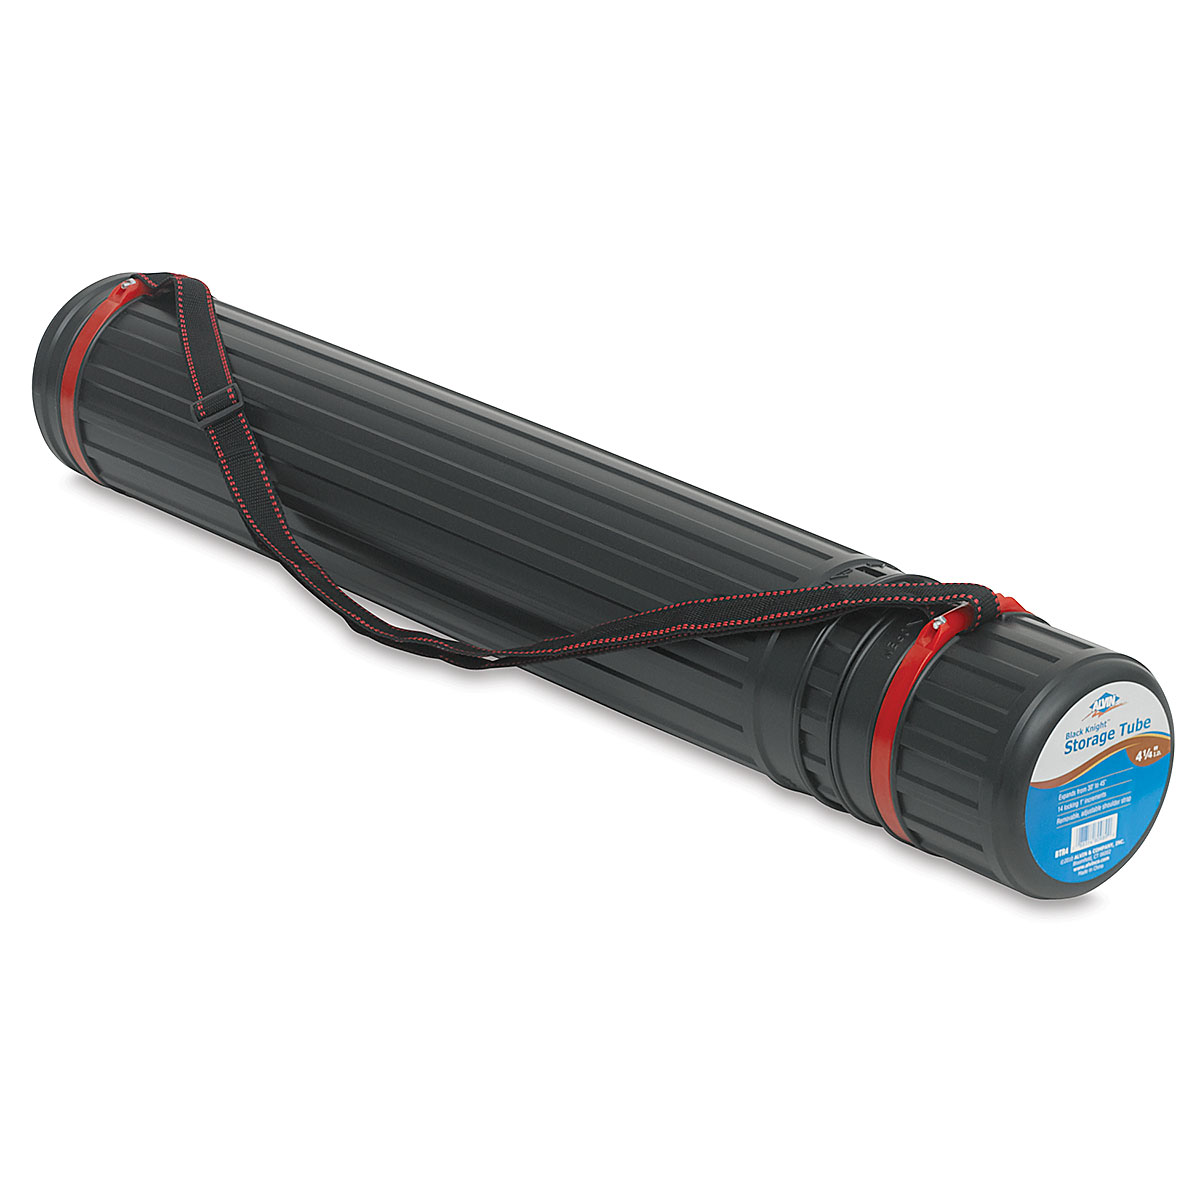 Ideal For Storage Of Important Documents Water Resistant Storage Tube in Black